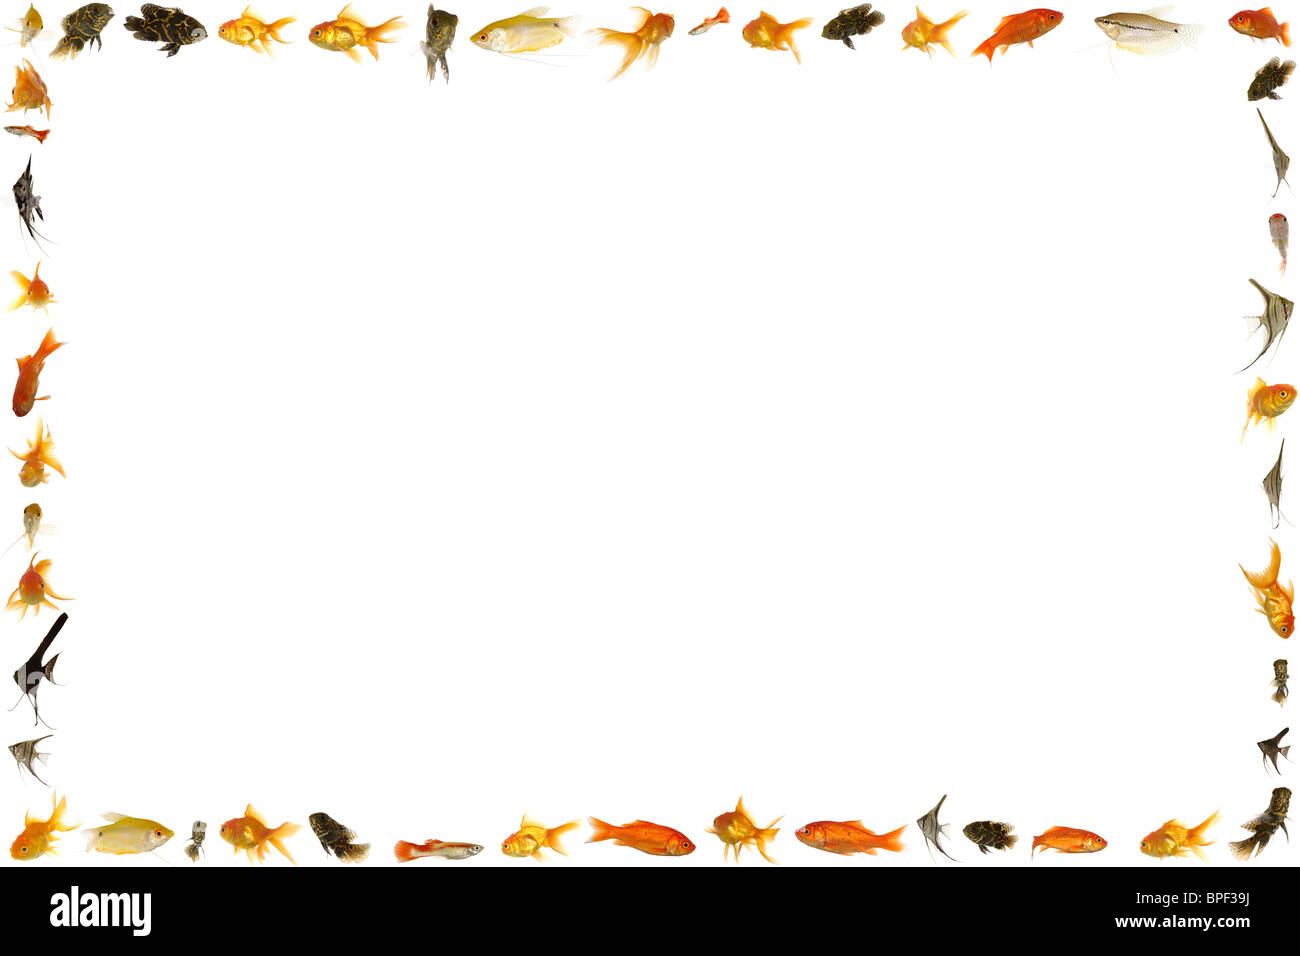 Fish frame isolated on white background. Many different freshwater ...